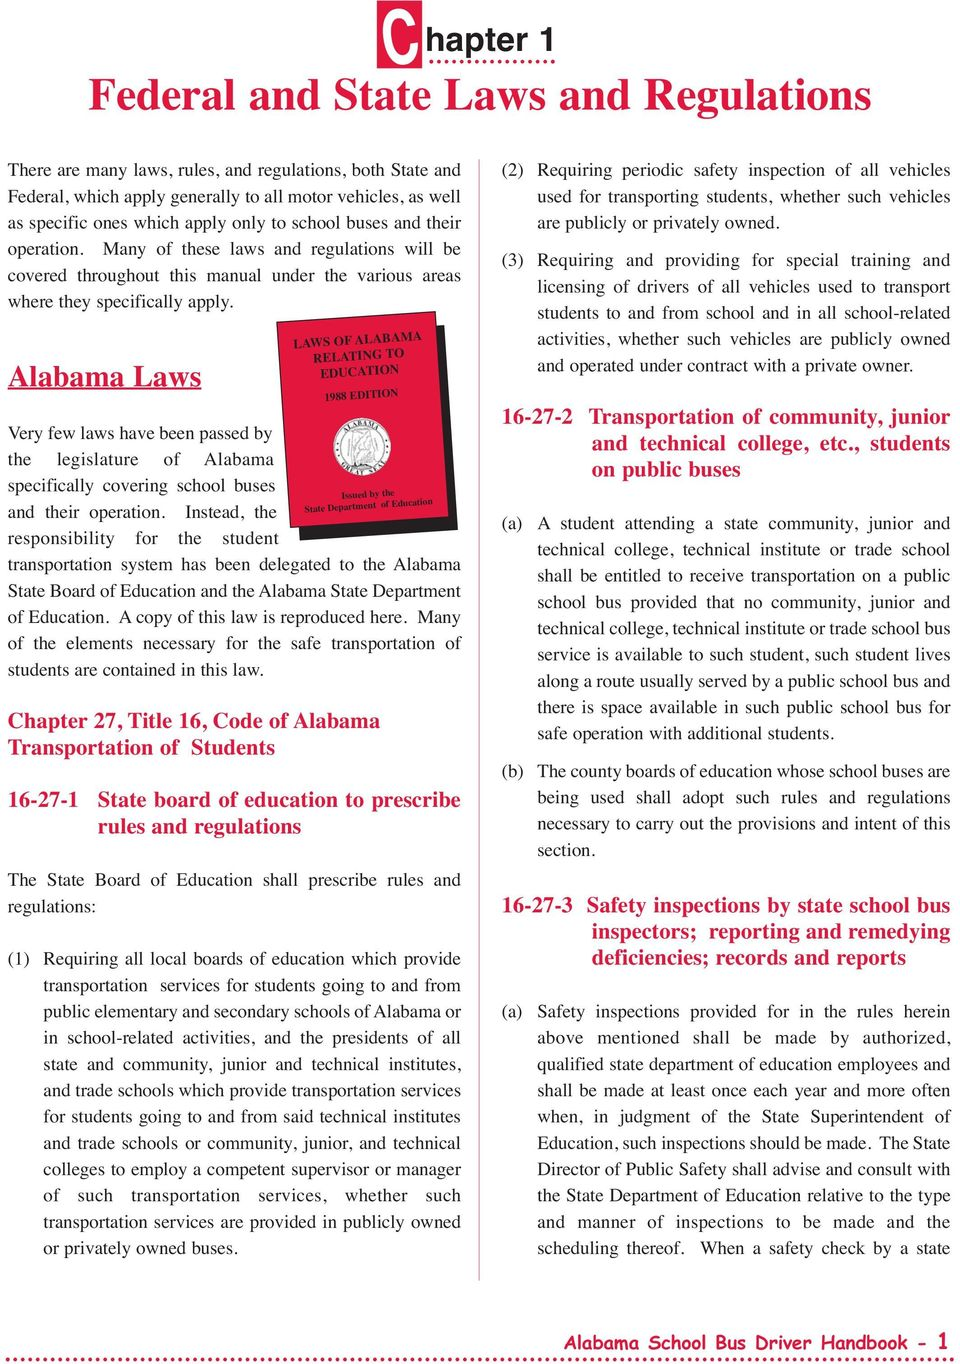 Alabama Laws Very few laws have been passed by the legislature of Alabama specifically covering school buses and their operation.